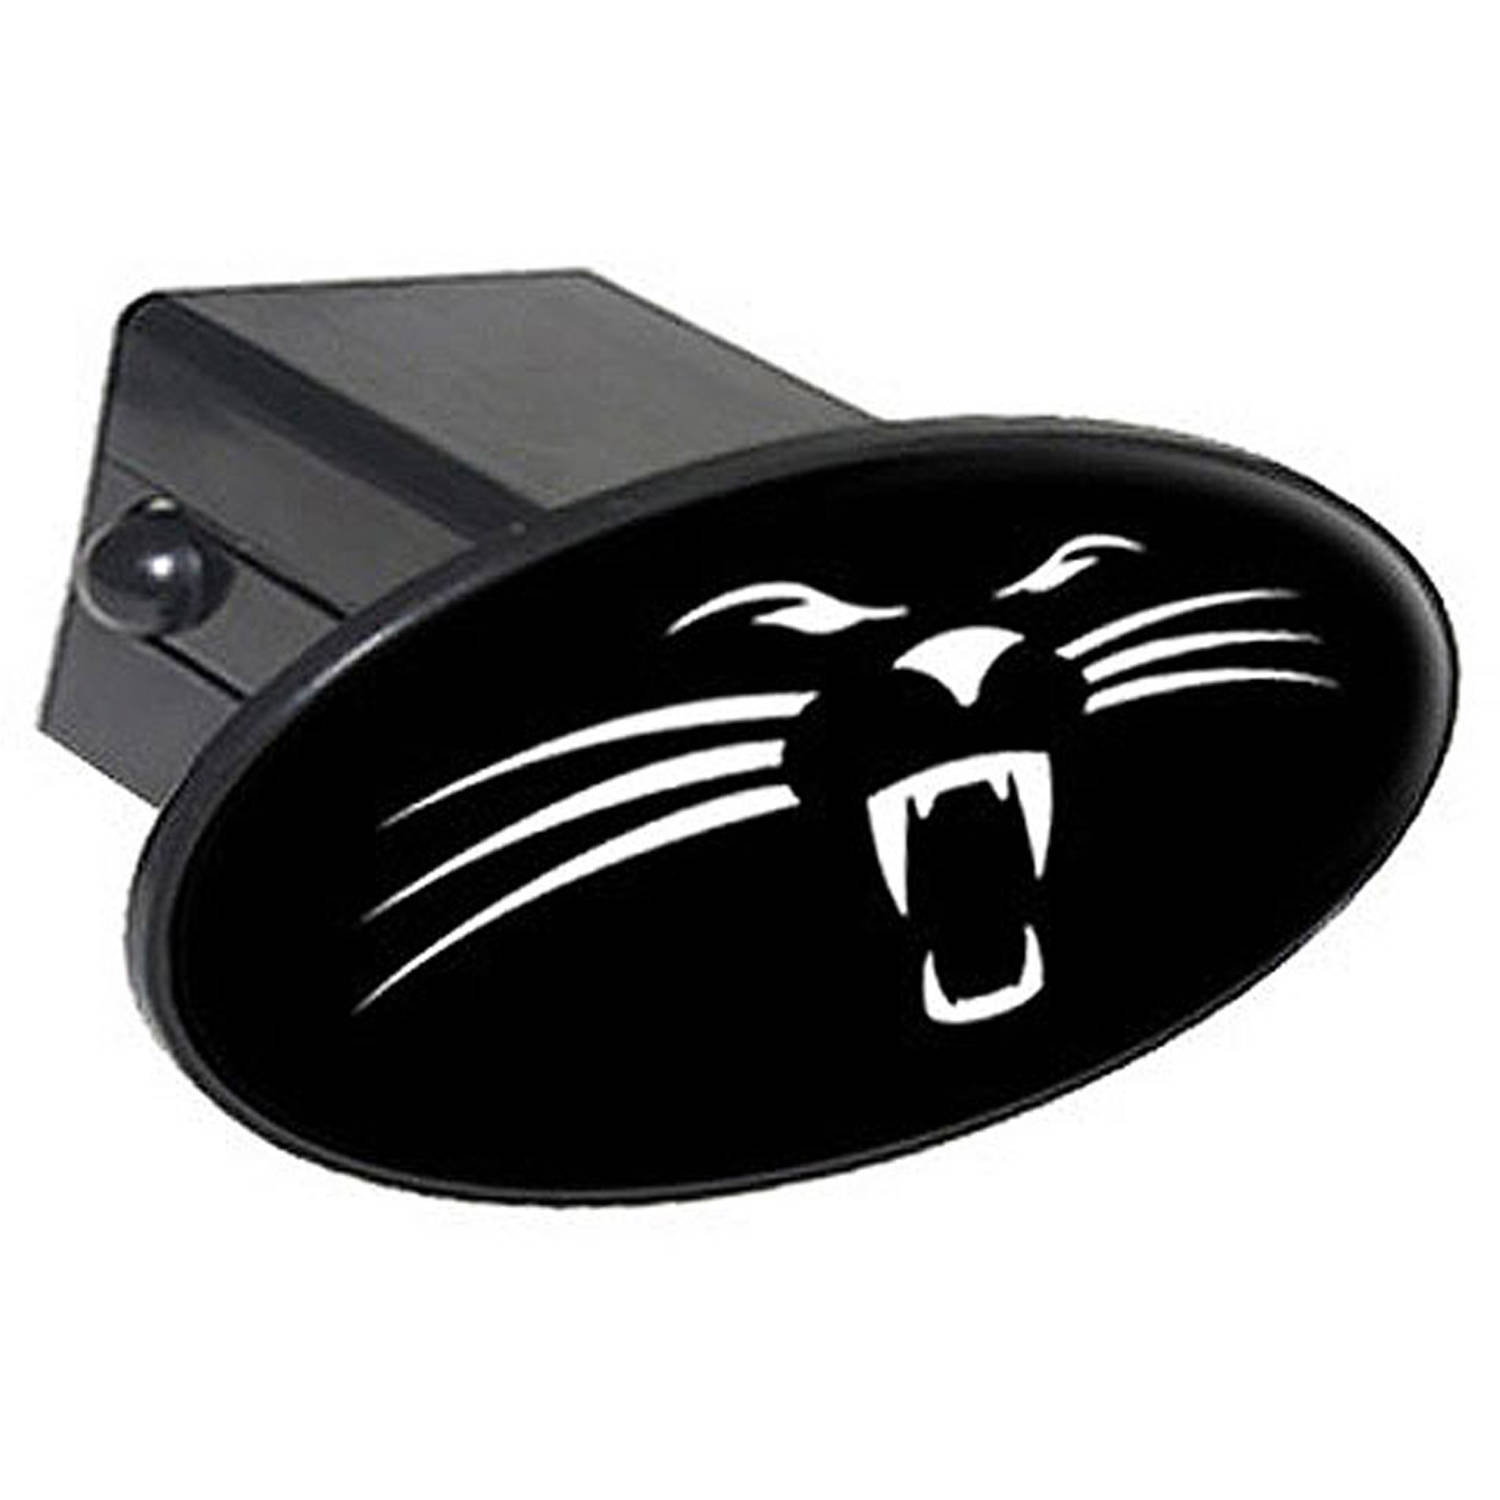 "Panther Face On Black 2"" Oval Tow Trailer Hitch Cover Plug Insert"